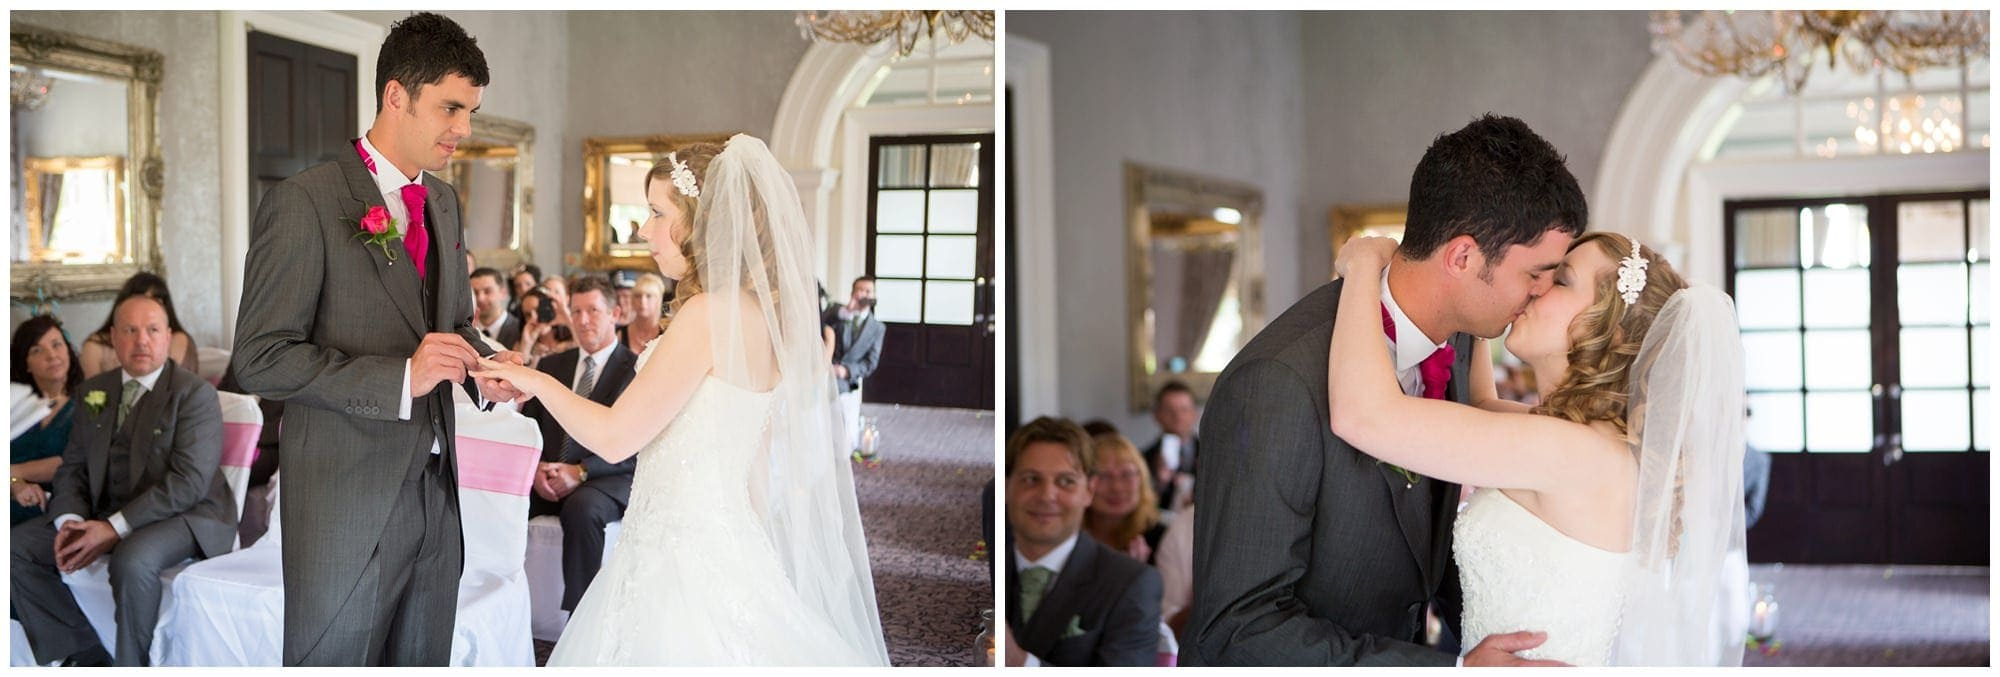 Robyn & Richard Atkins, Oulton Hall, Leeds